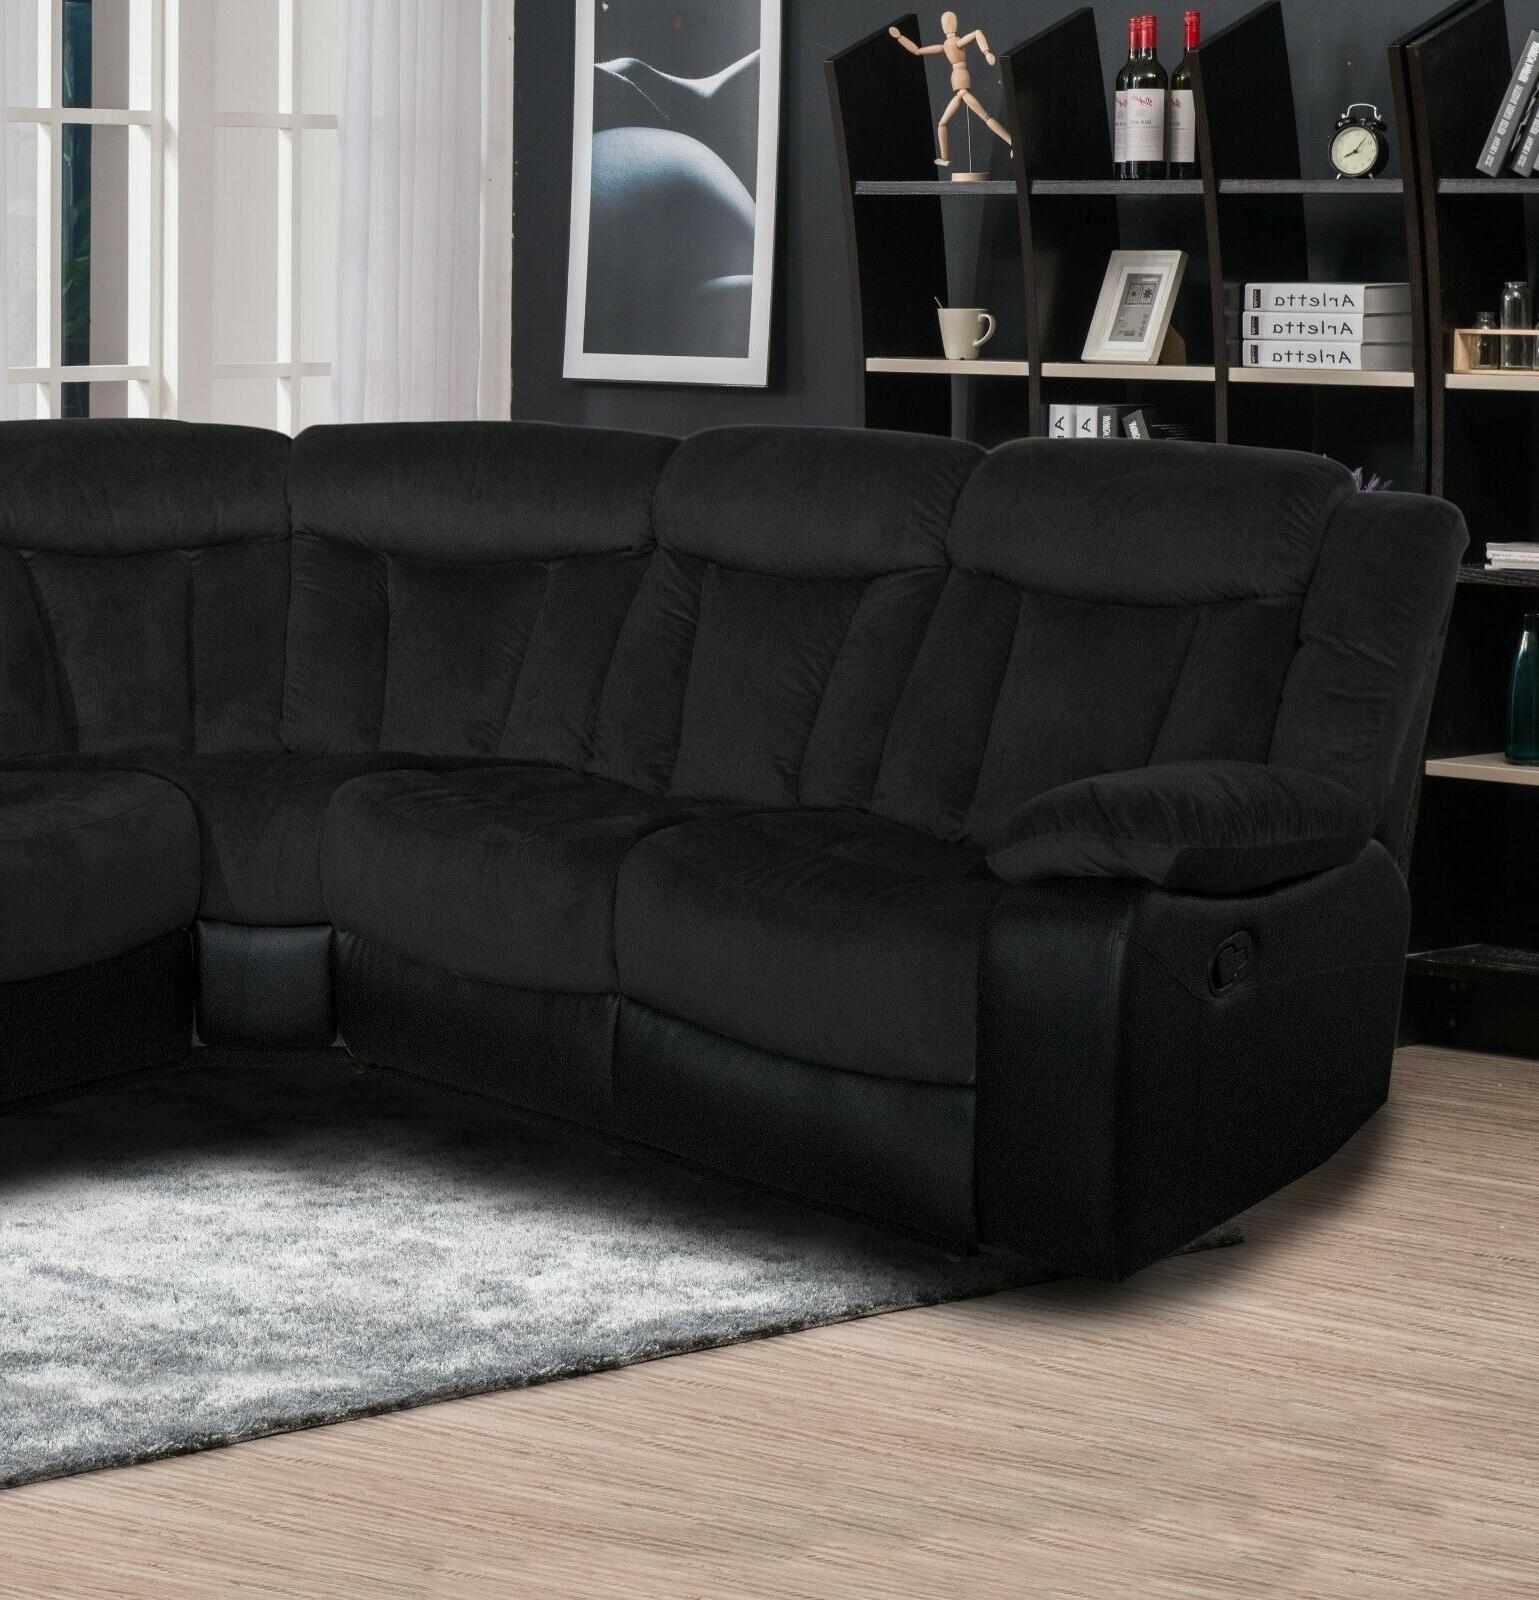 Living Reclining Sofa Wedge Black Upholstered